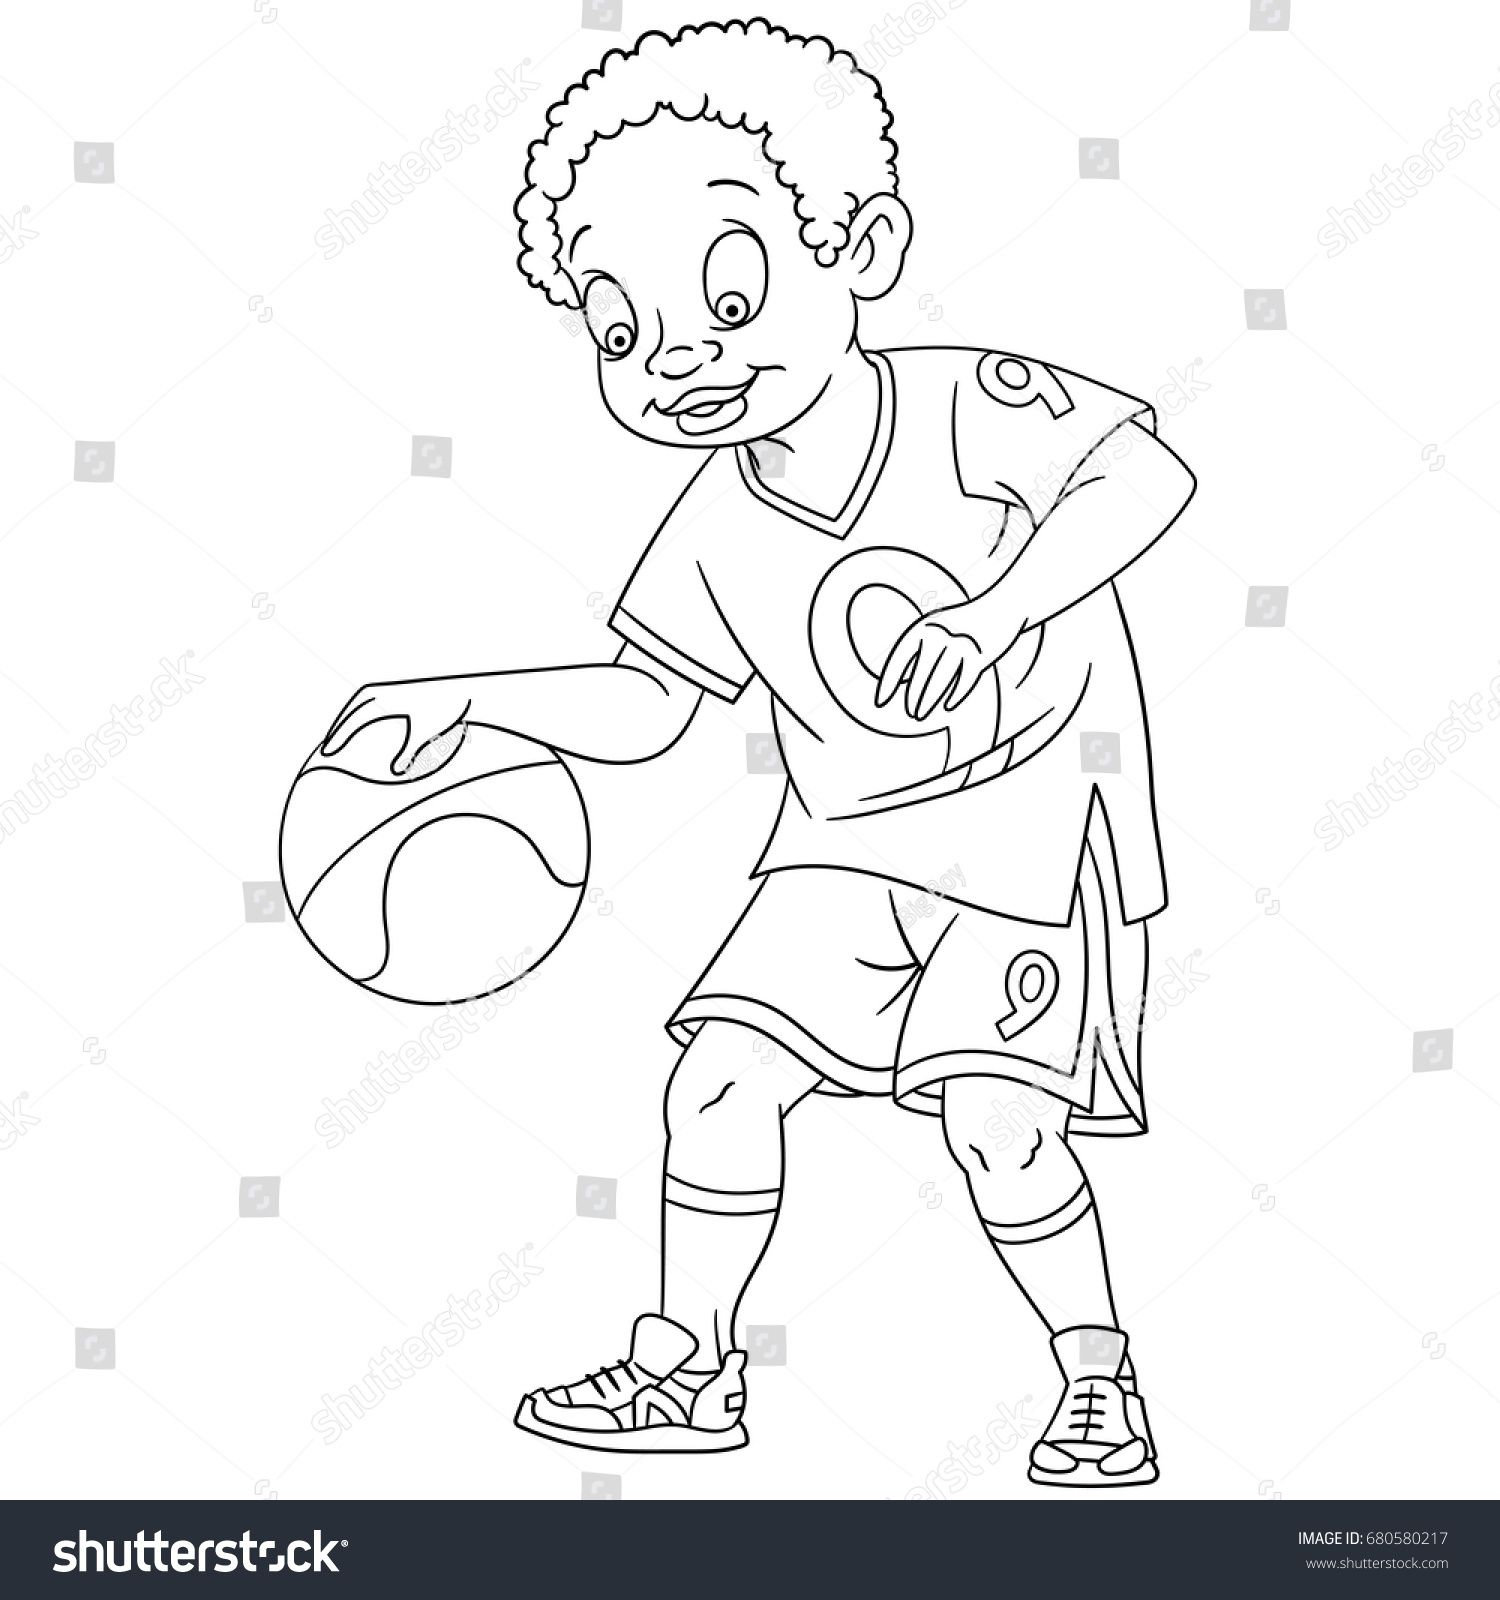 Basketball Coloring Pages 14